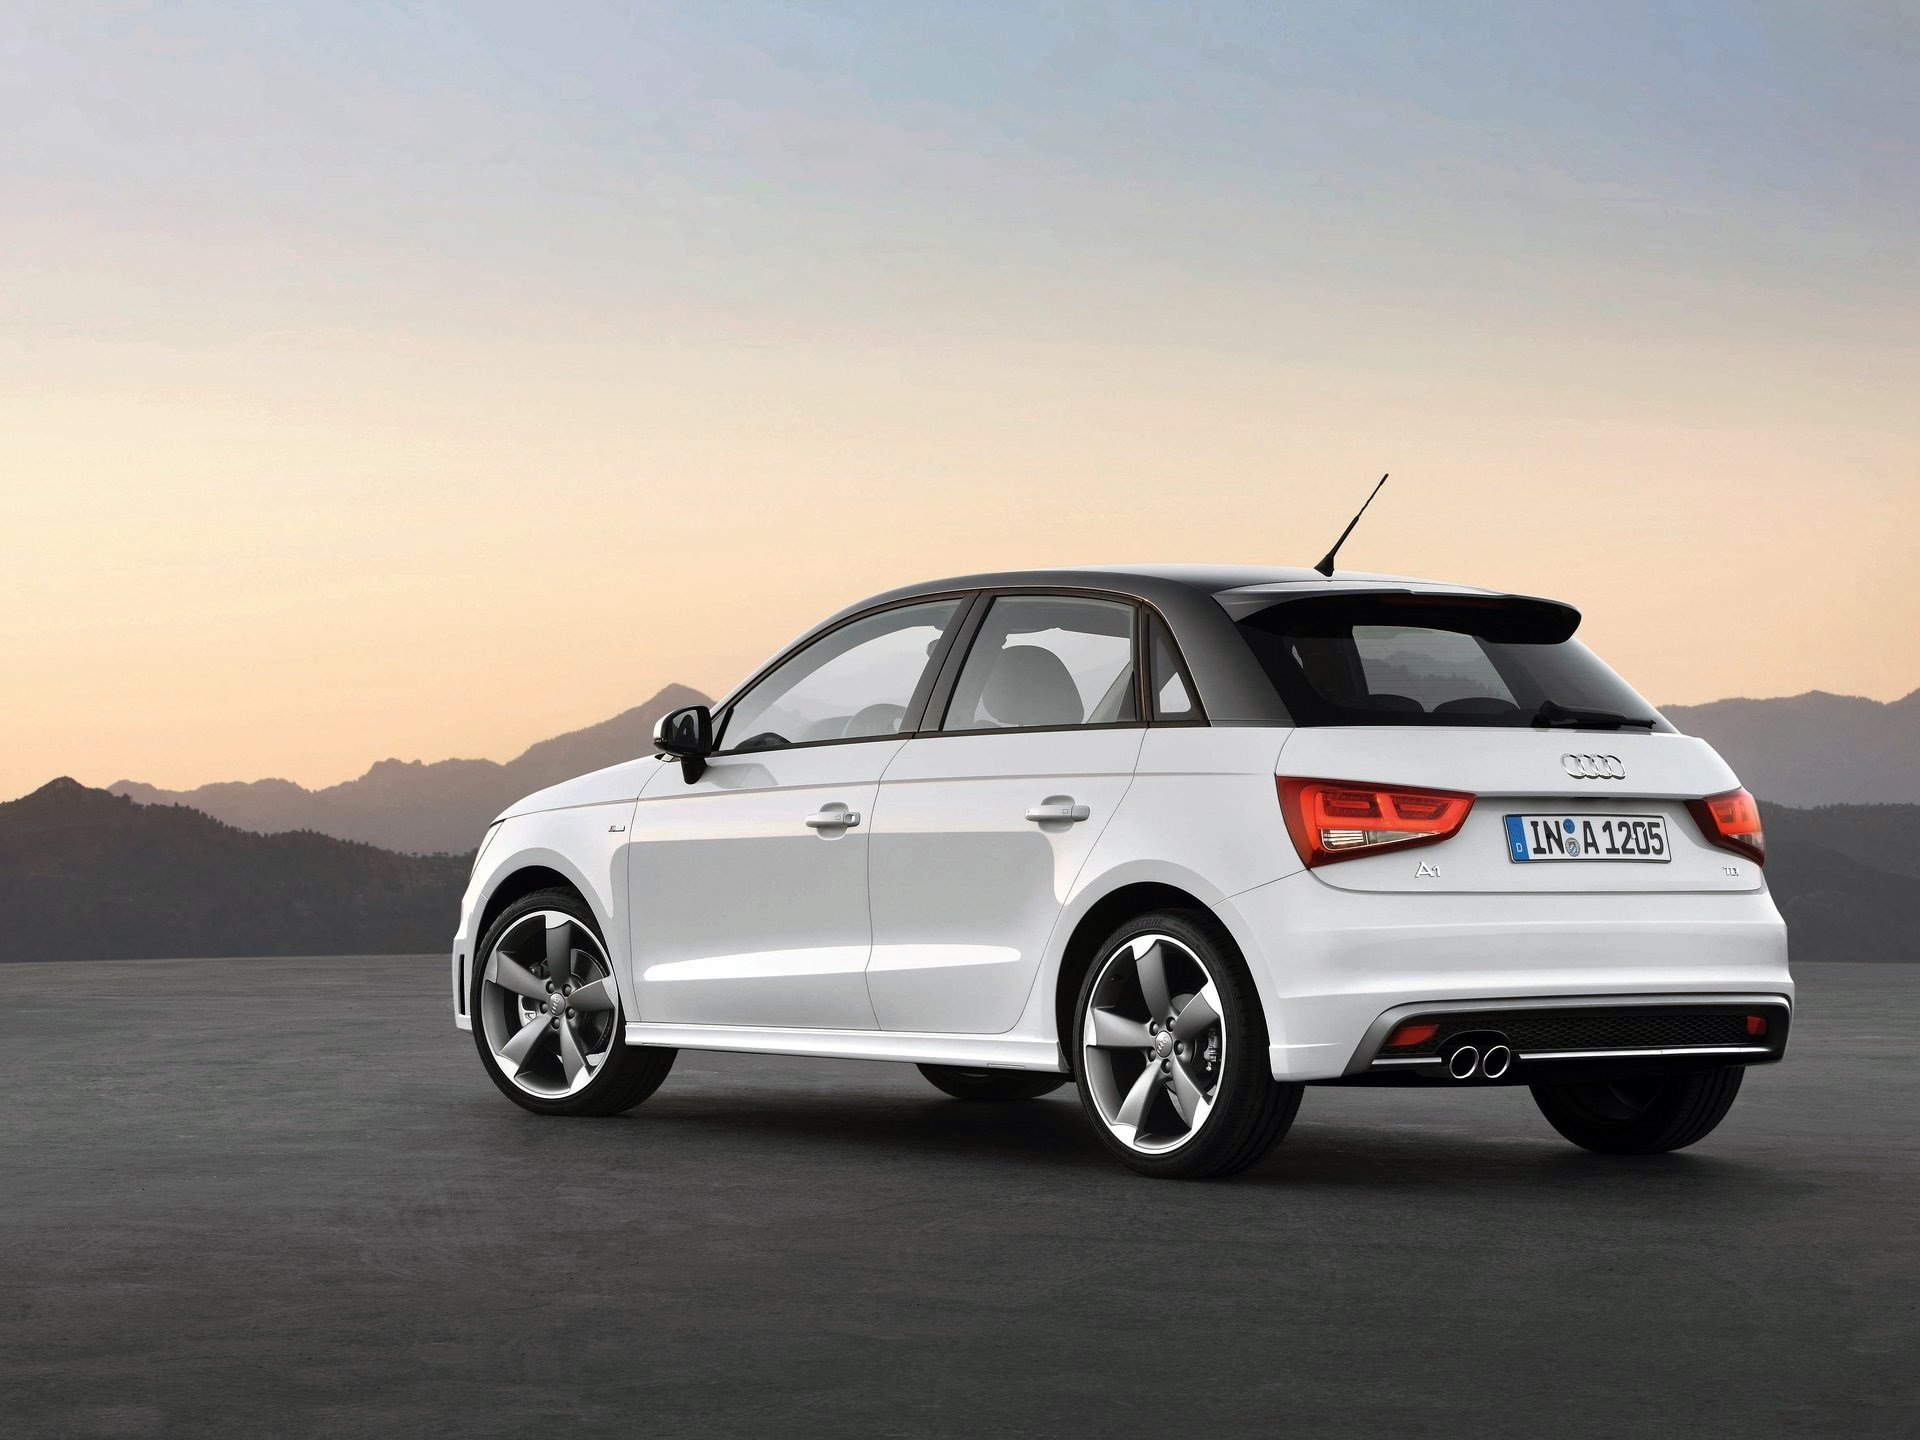 1920x1440 - Audi A1 Wallpapers 25